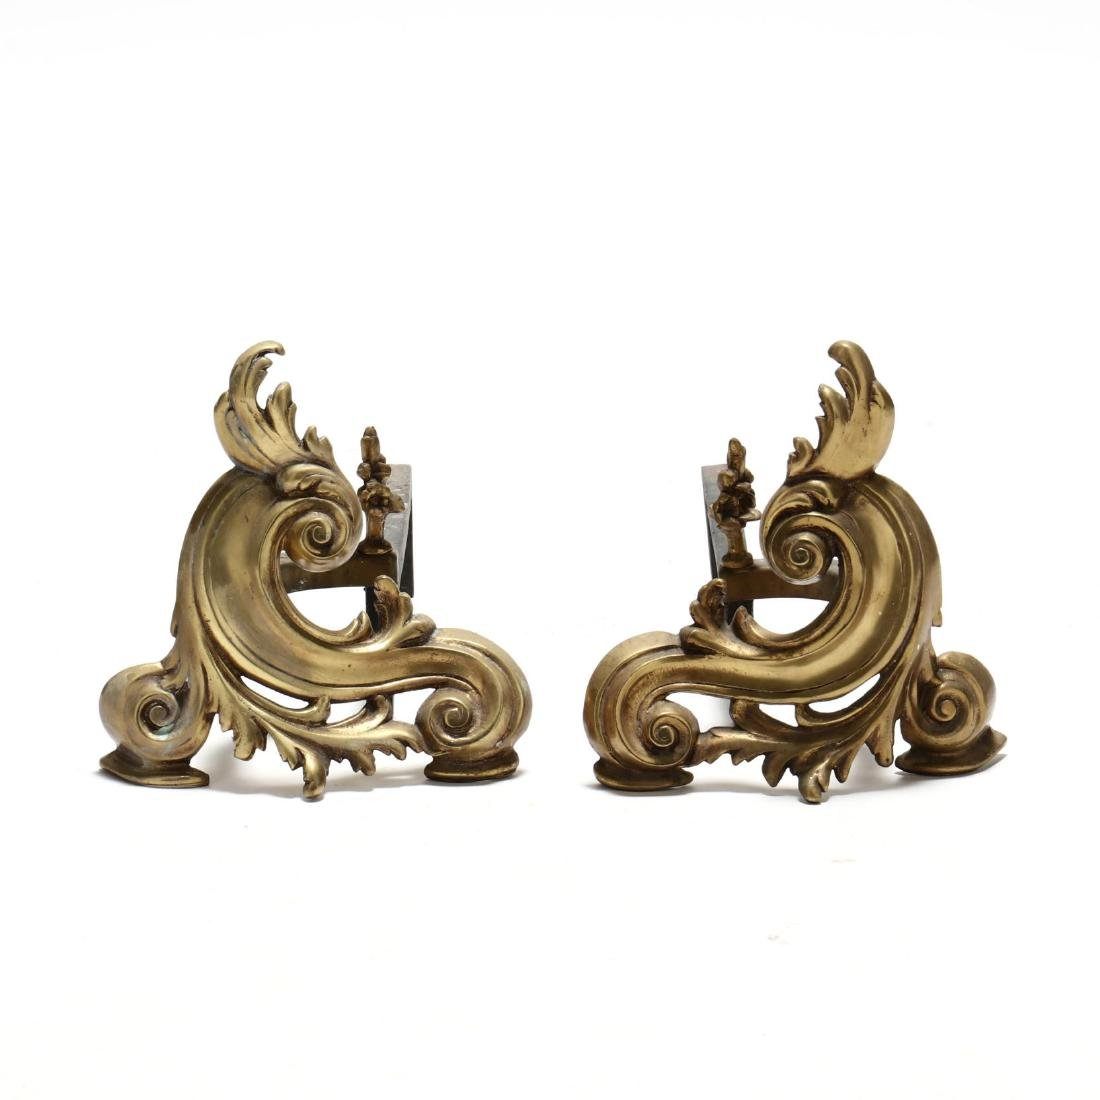 Pair of French Rococo Style Brass Chenets